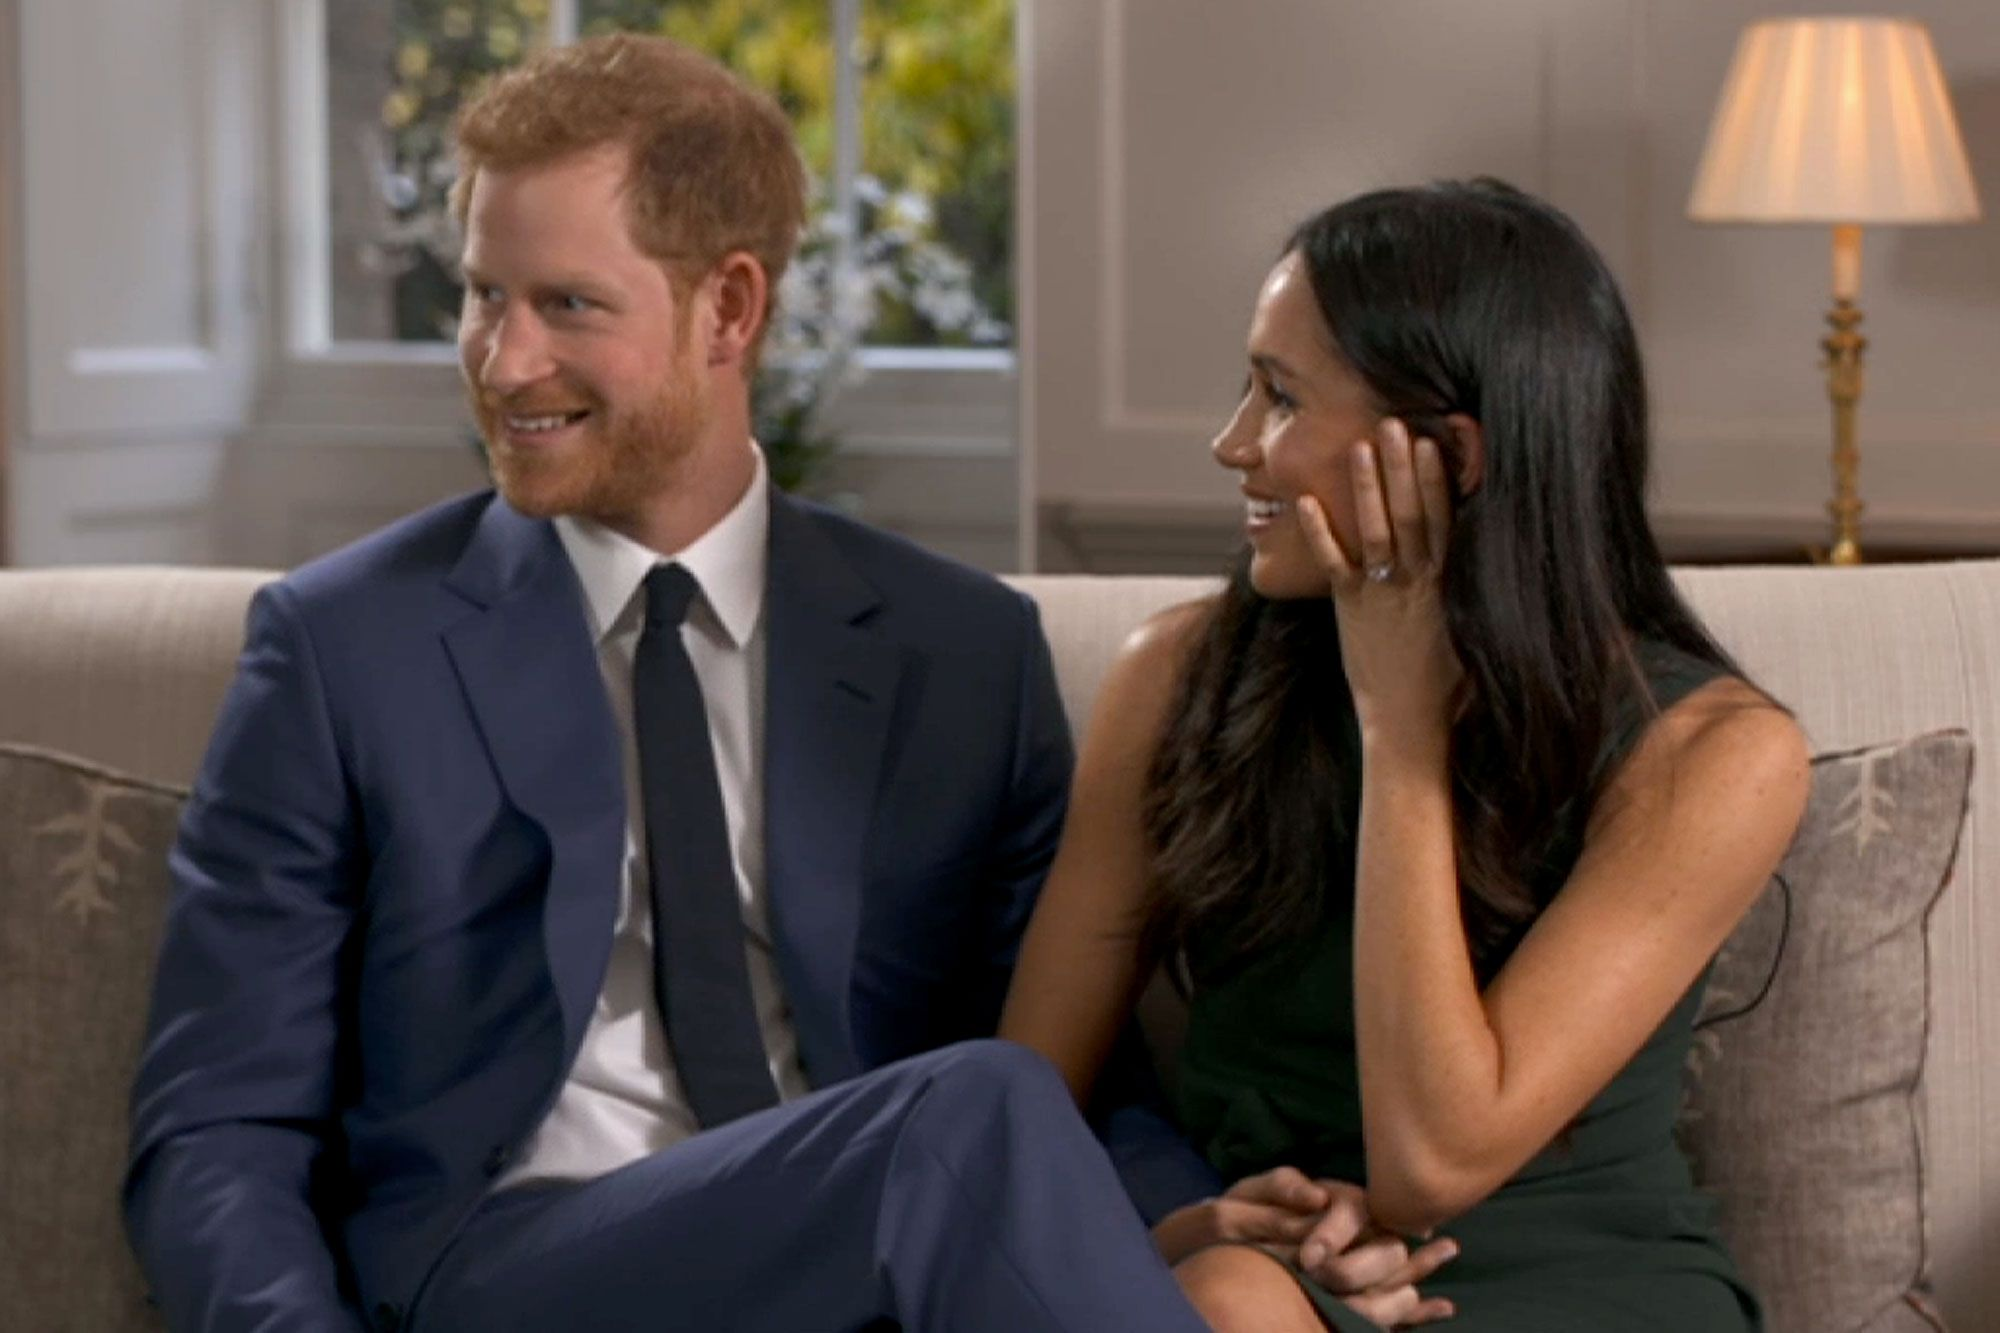 Meghan Markle And Prince Harry Giggle And Goof Off Behind The Scenes Of Engagement Interview Prince Harry And Meghan Prince Harry And Megan Harry And Meghan